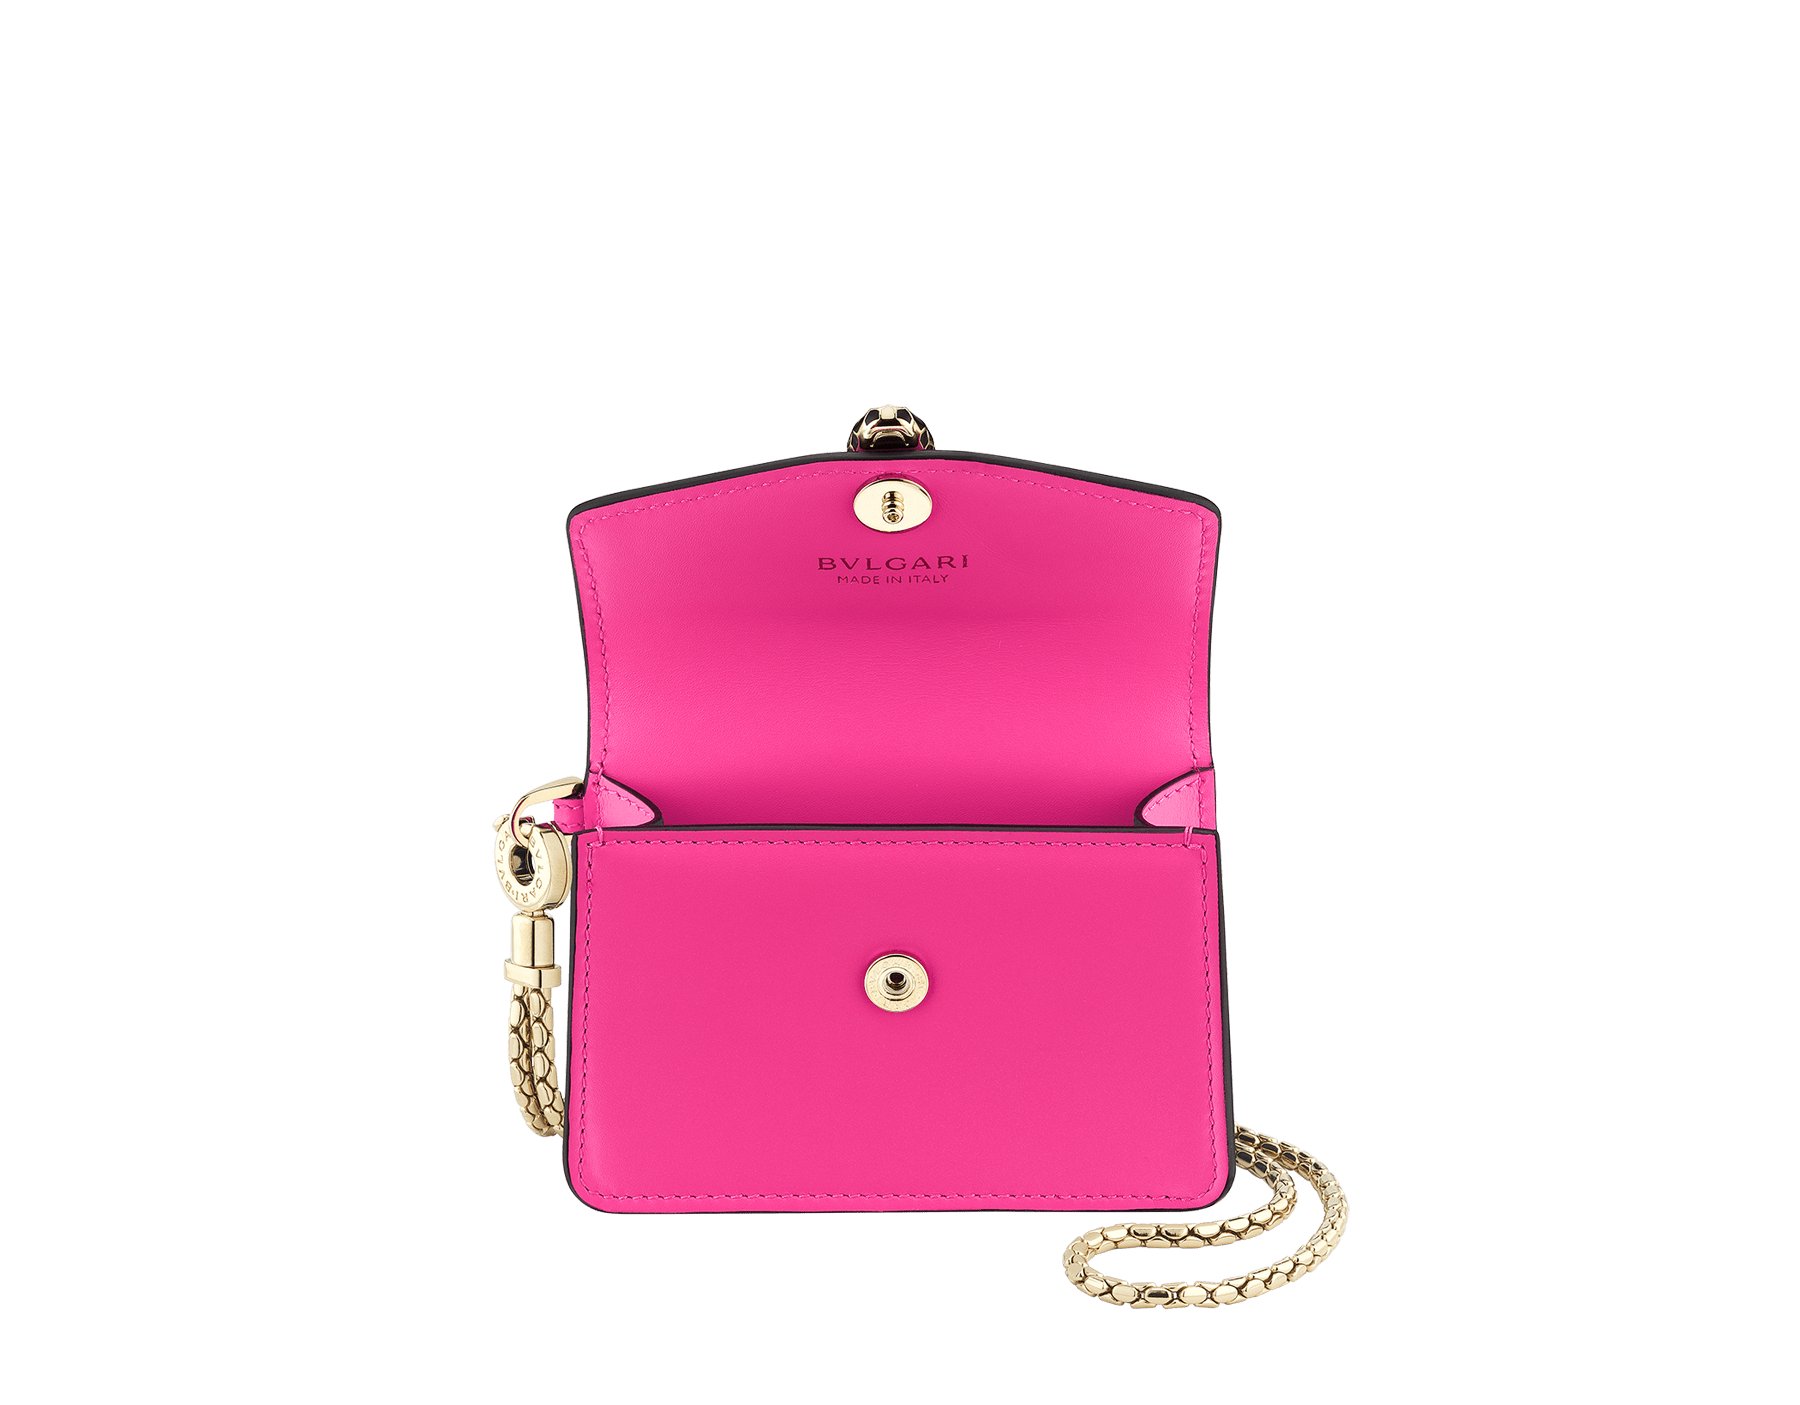 Serpenti Forever neck credit card holder in flash amethyst calf leather. Iconic snake head closure in black and white enamel, with green enamel eyes. 289396 image 2